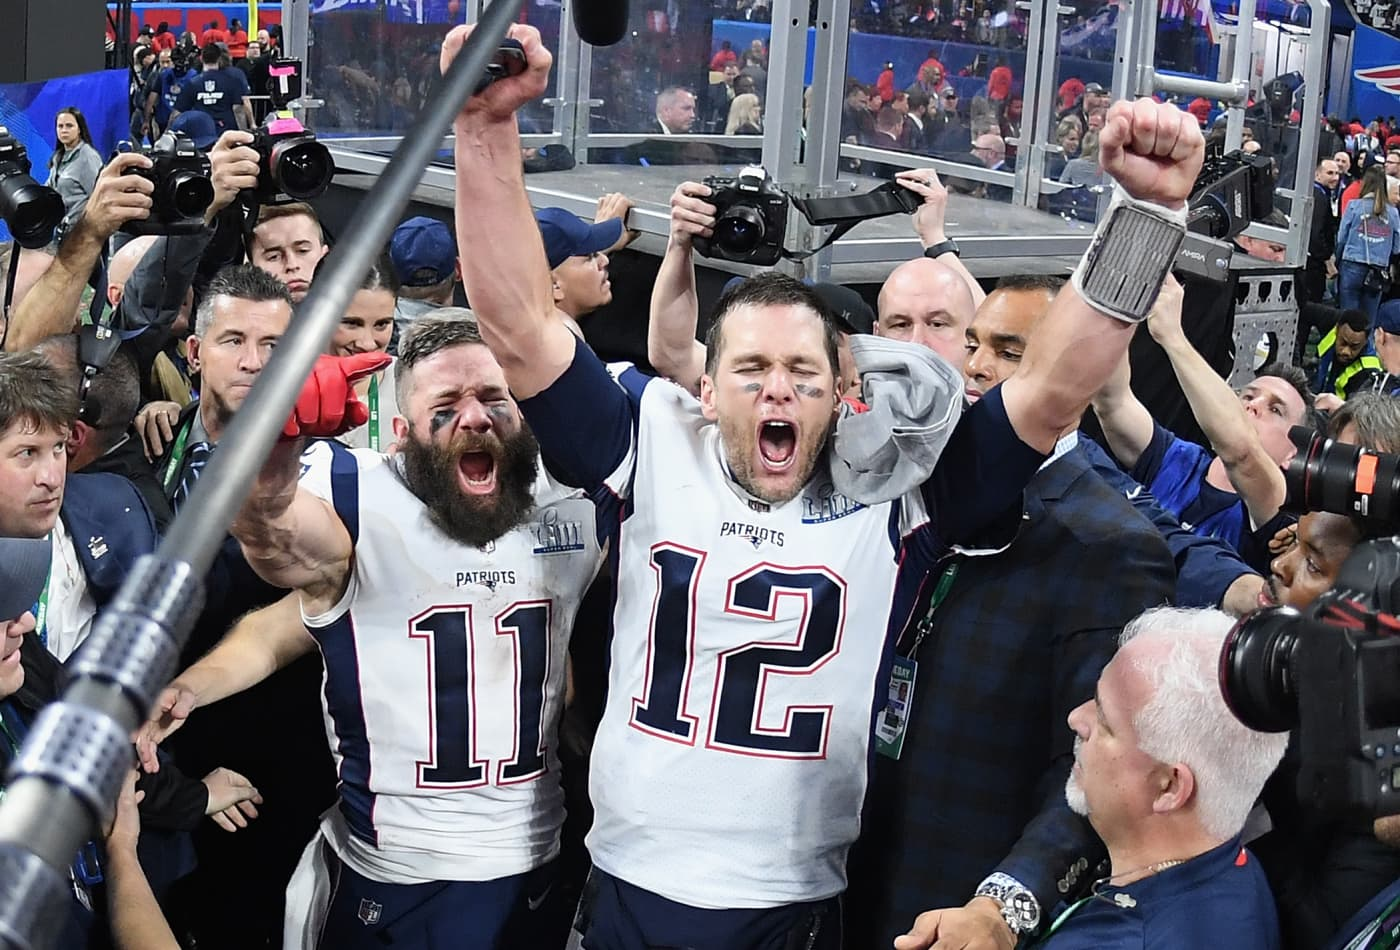 How much money the Patriots get for winning the Super Bowl